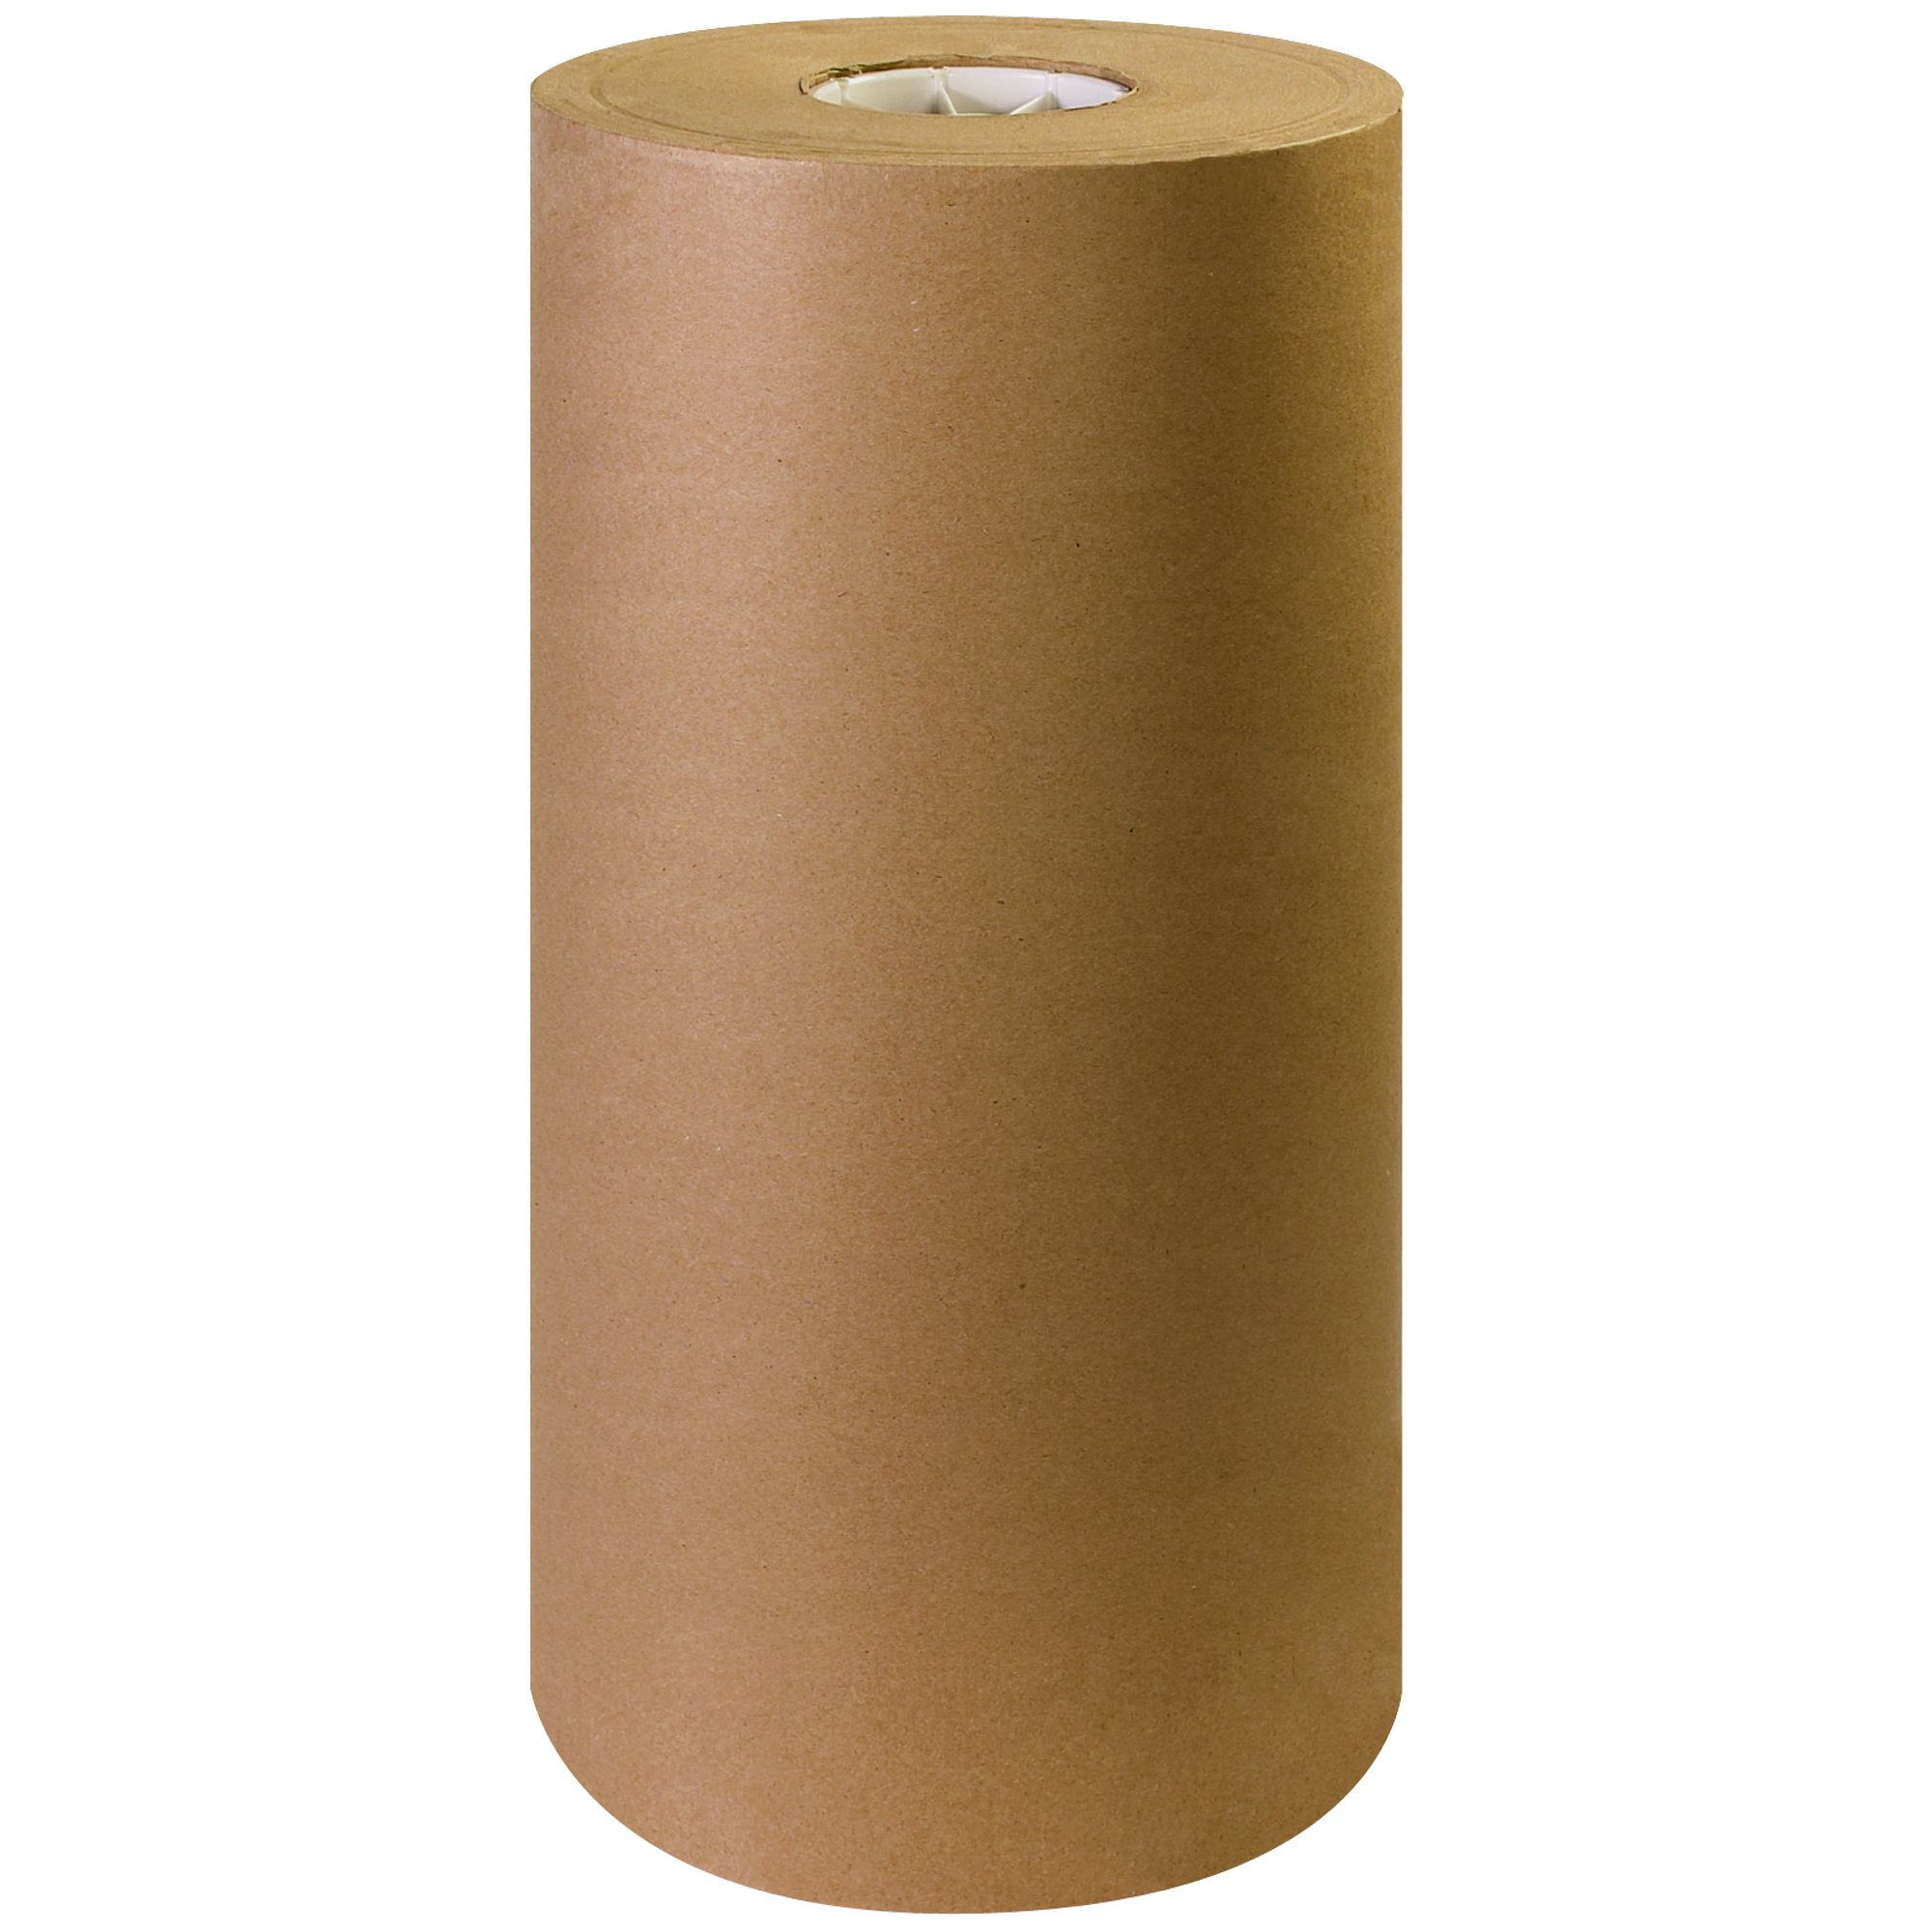 BOX USA BKP1840 Kraft Paper Rolls, 40#, 18'' x 900', Kraft by BOX USA